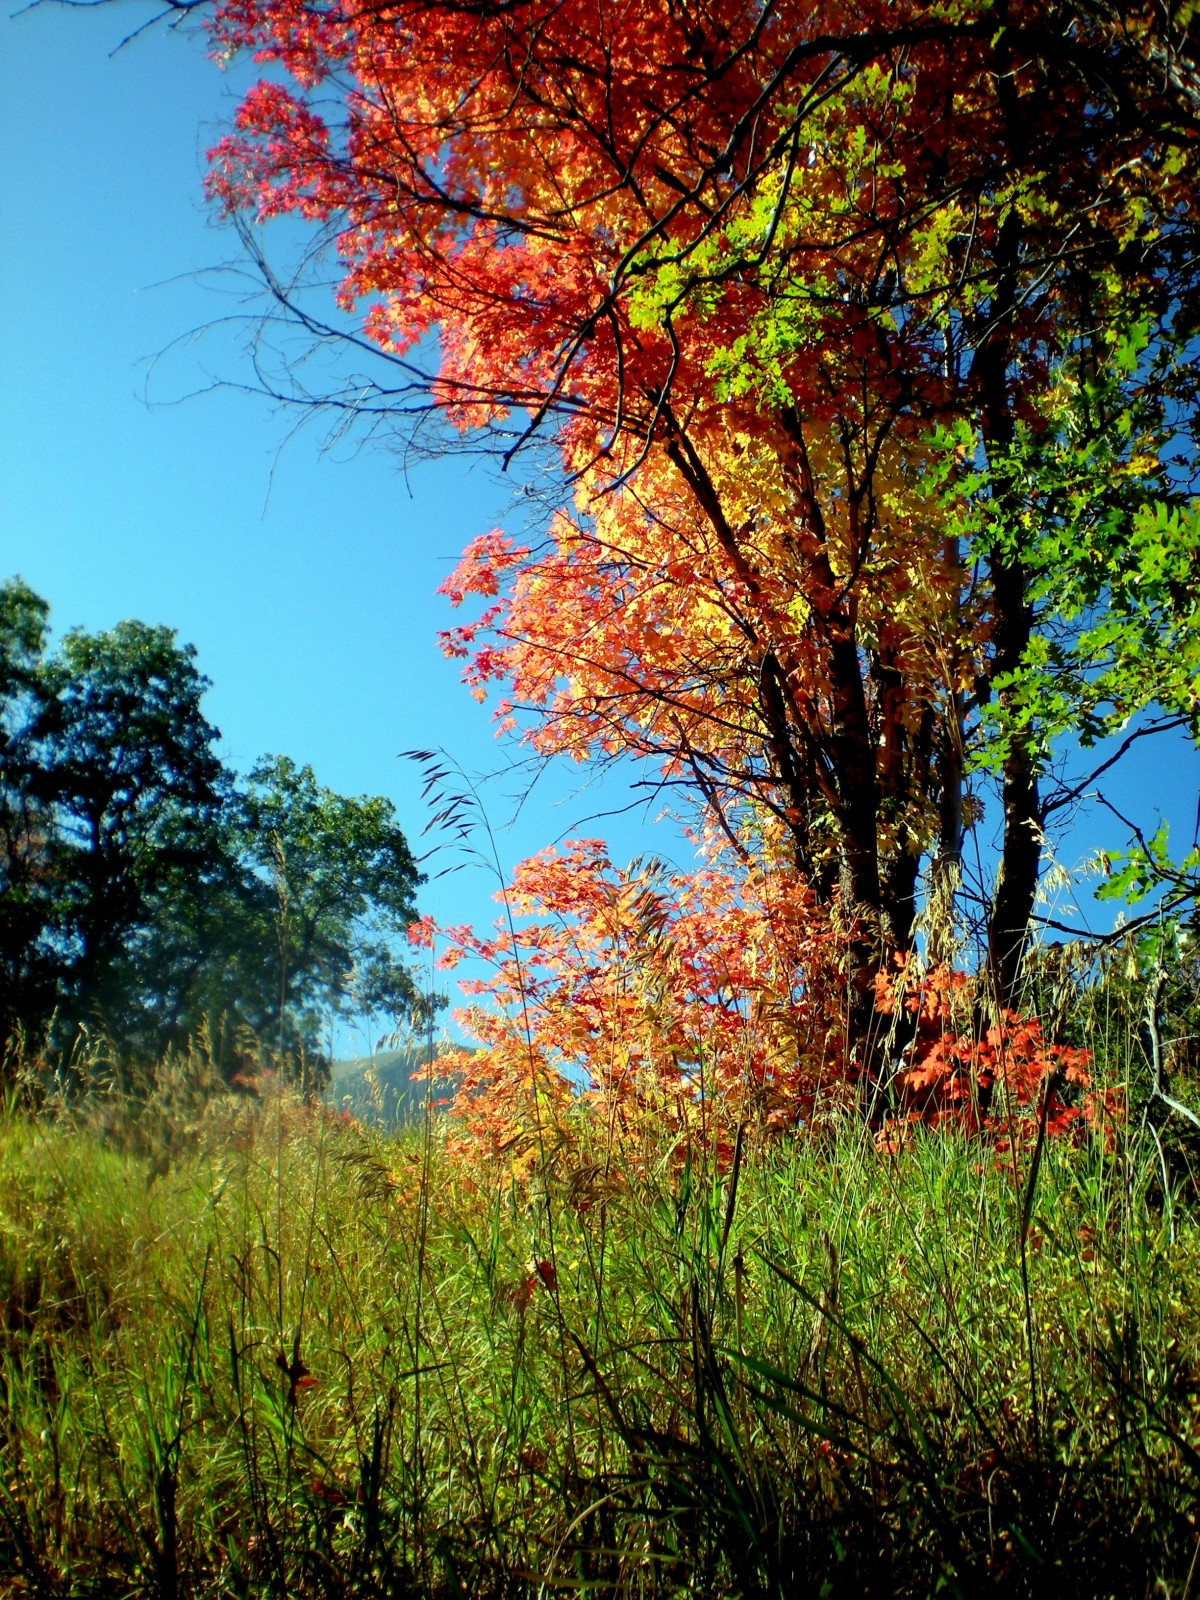 Autumn Fall Wallpaper Free Free Images Tree Nature Forest Grass Outdoor Branch